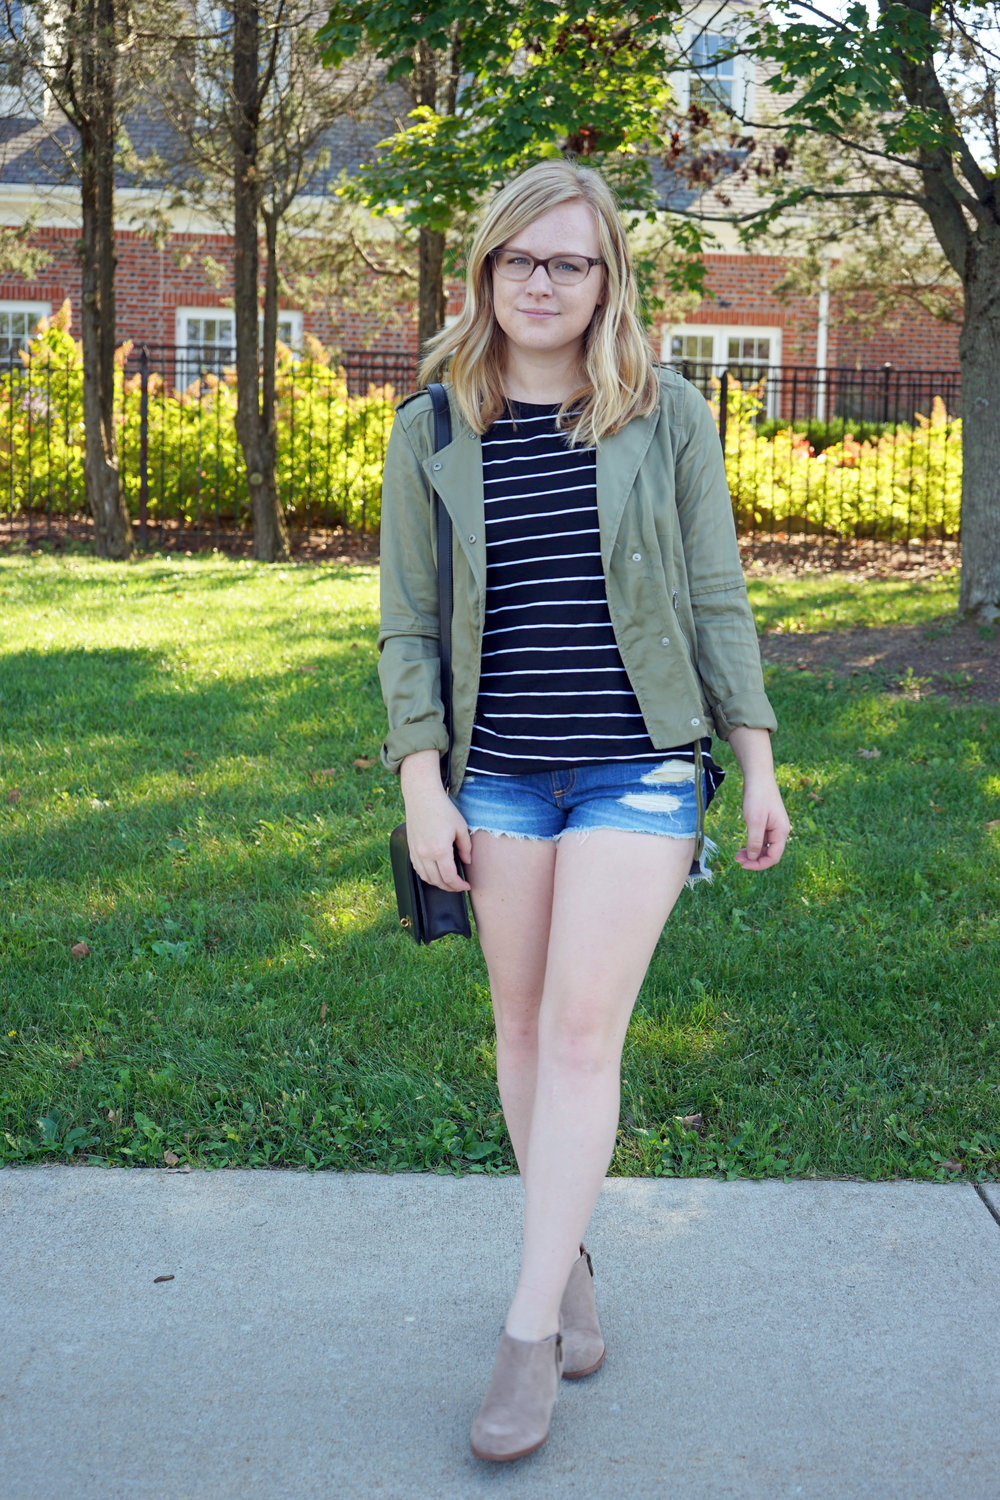 Maggie a la Mode - How to Wear Shorts in Fall 2.JPG